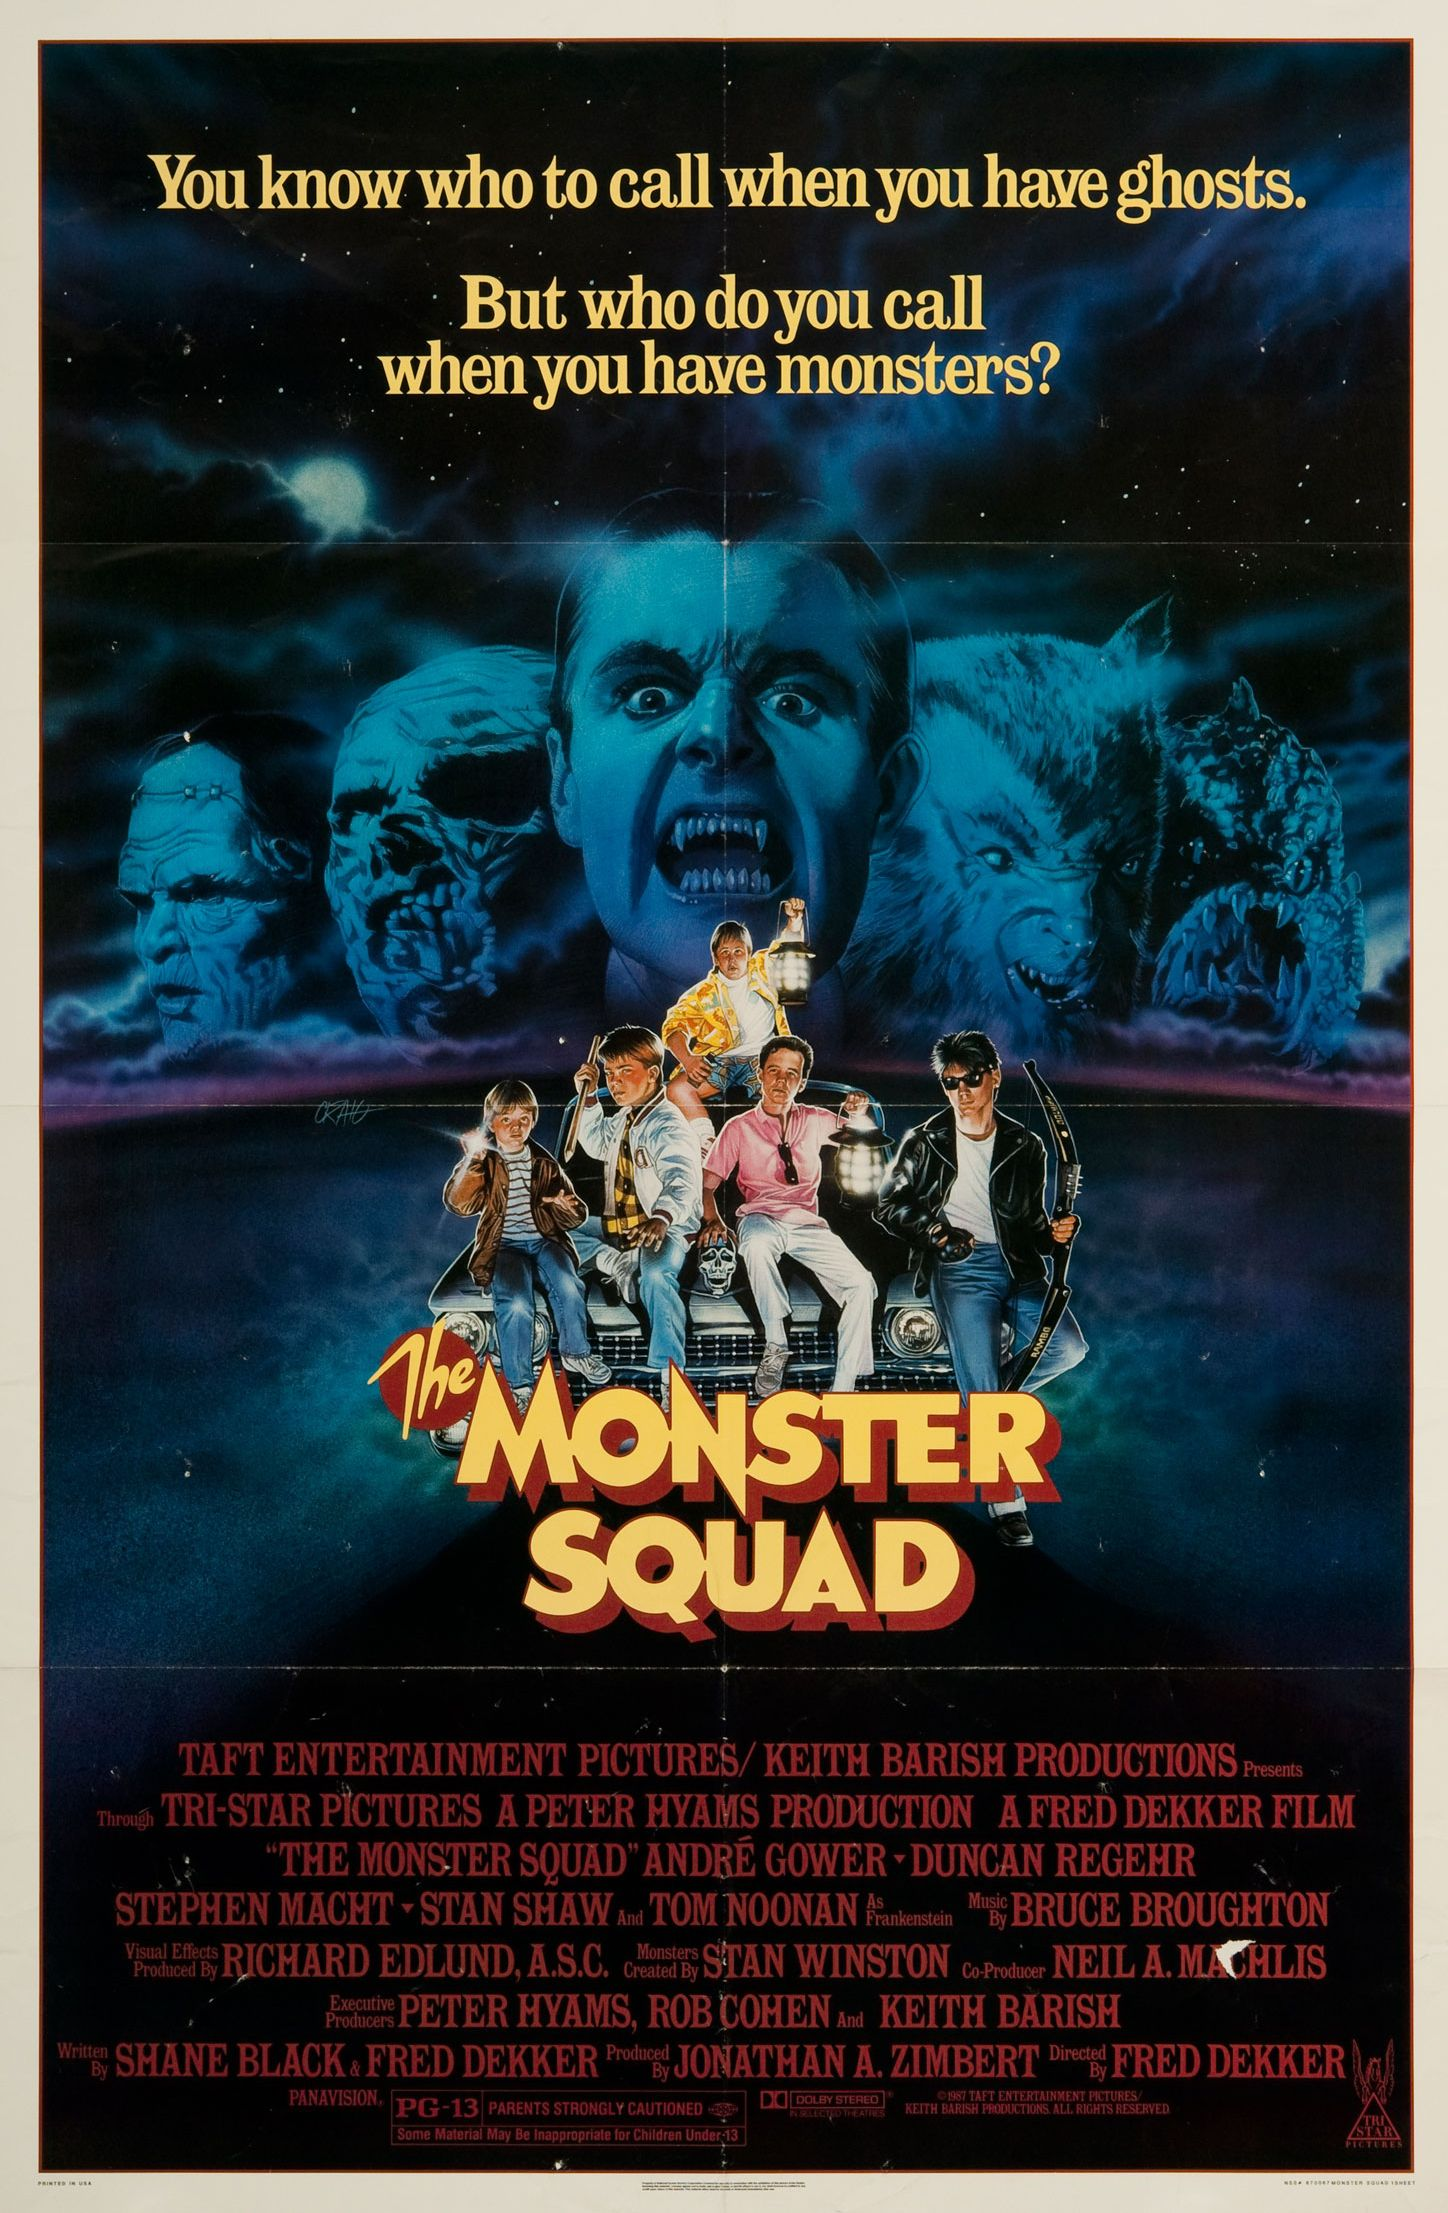 The Monster Squad is a 1987 horror comedy film written by